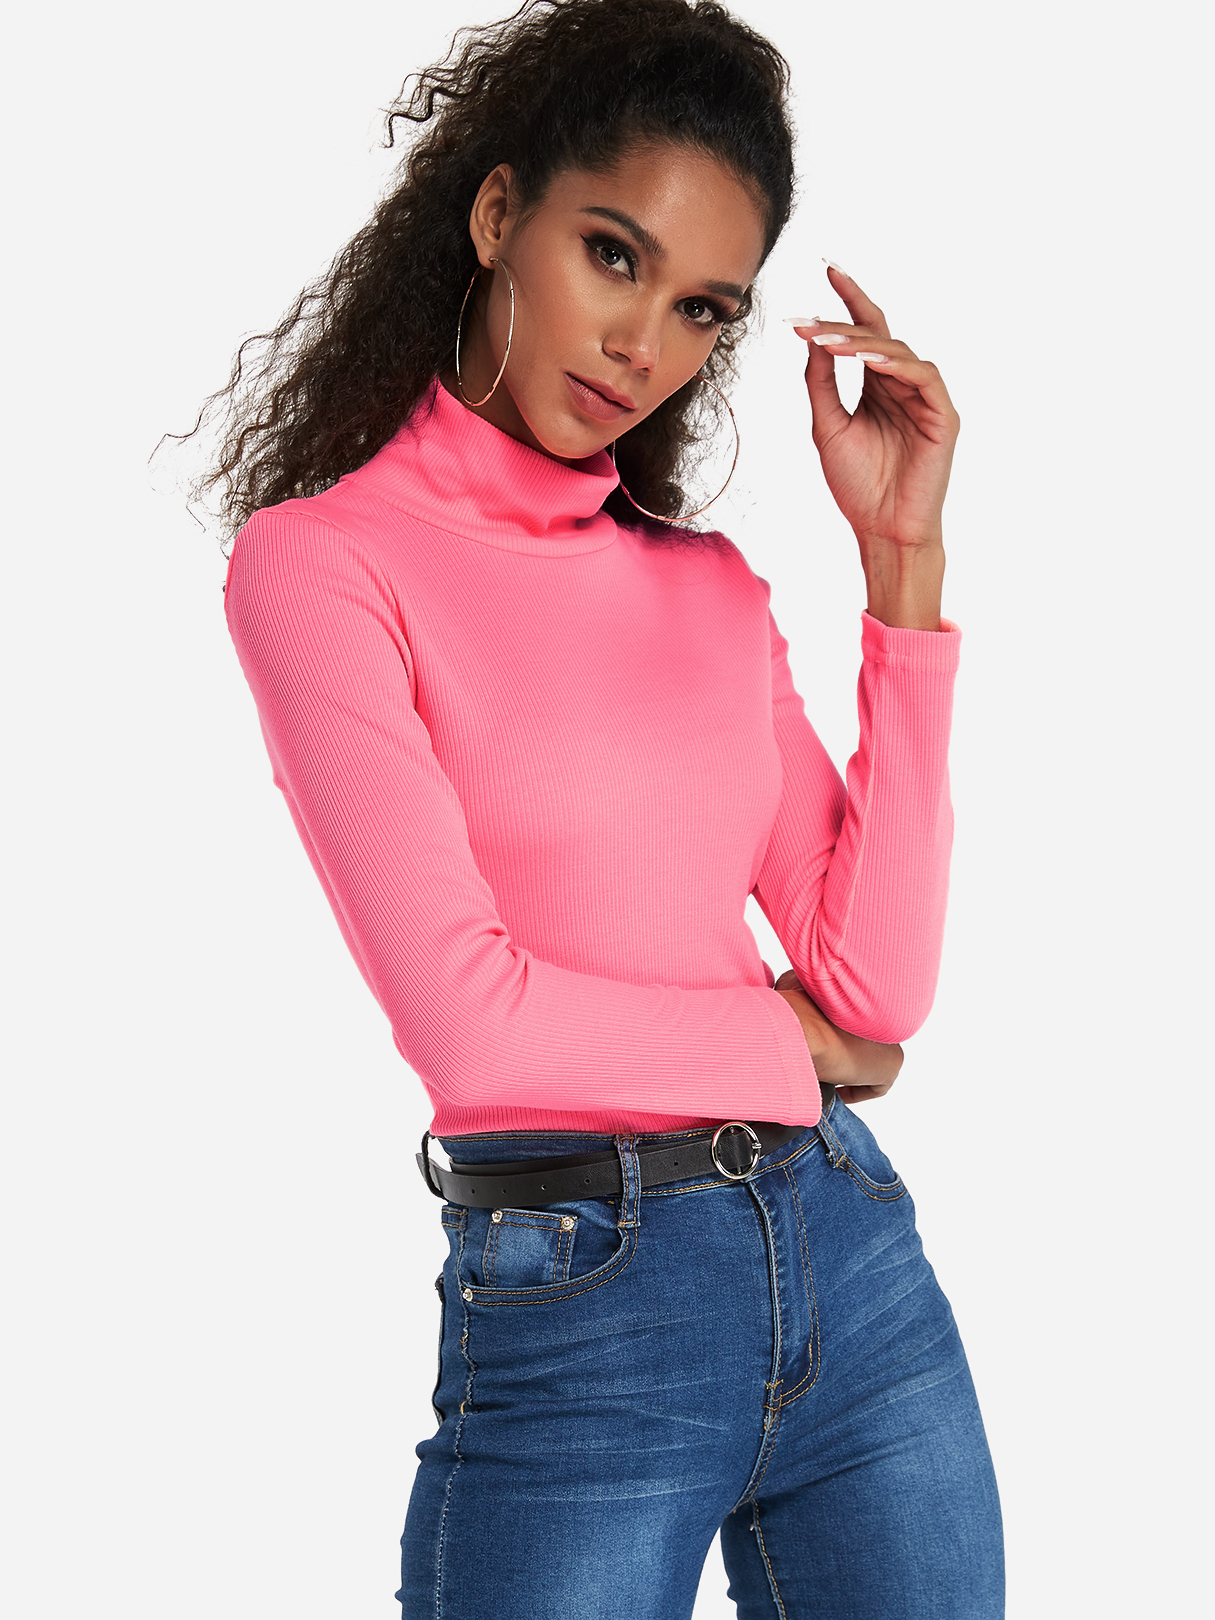 Neon Pink High-neck Long Sleeved Pullover Top